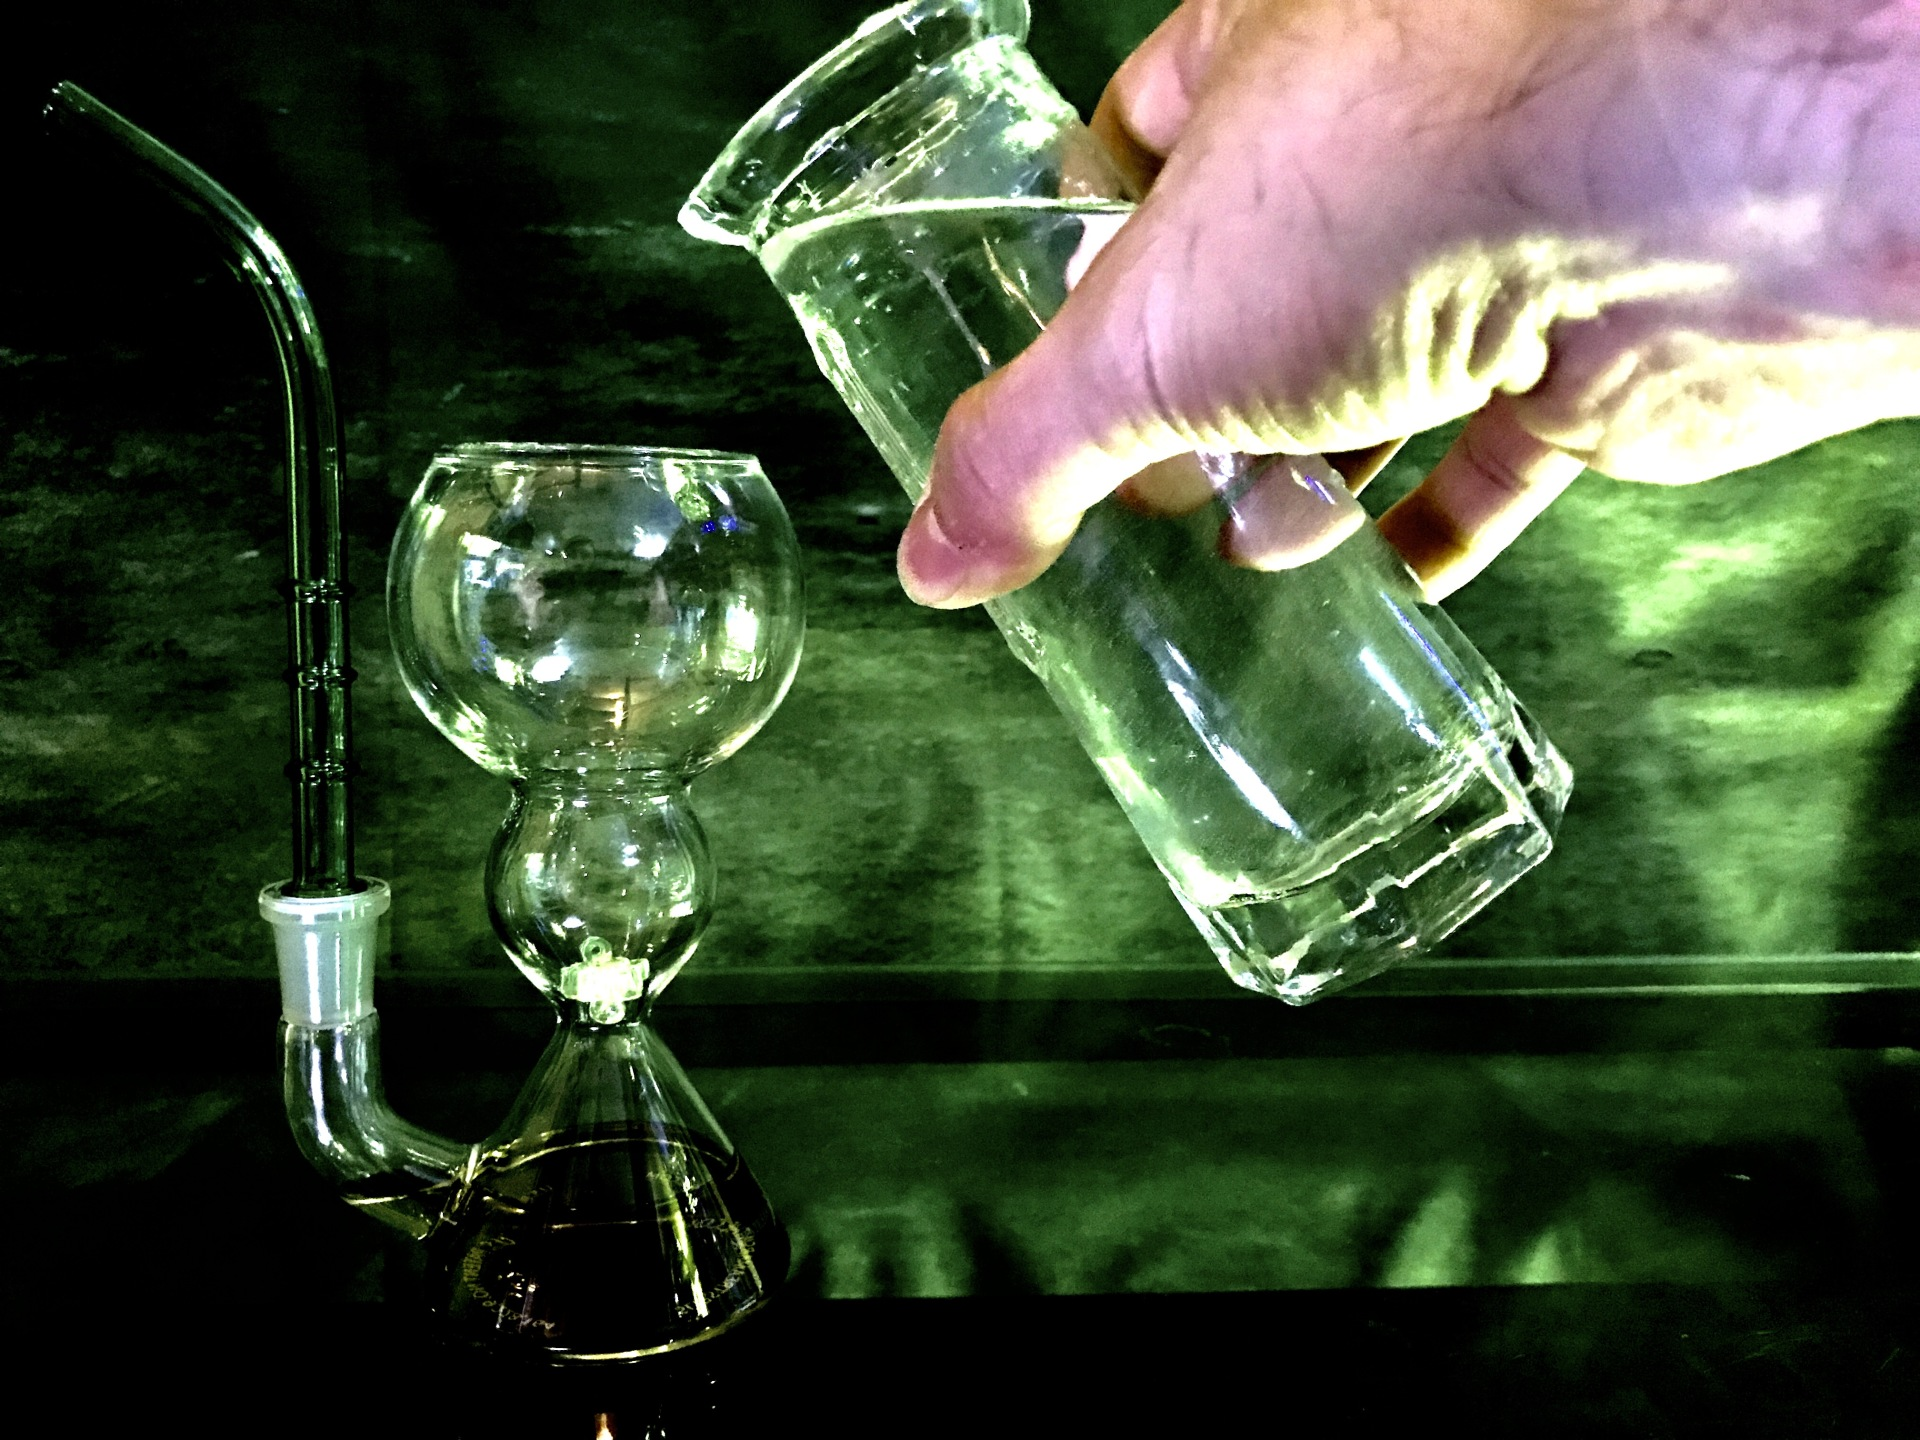 Modern method to prepare Absinthe